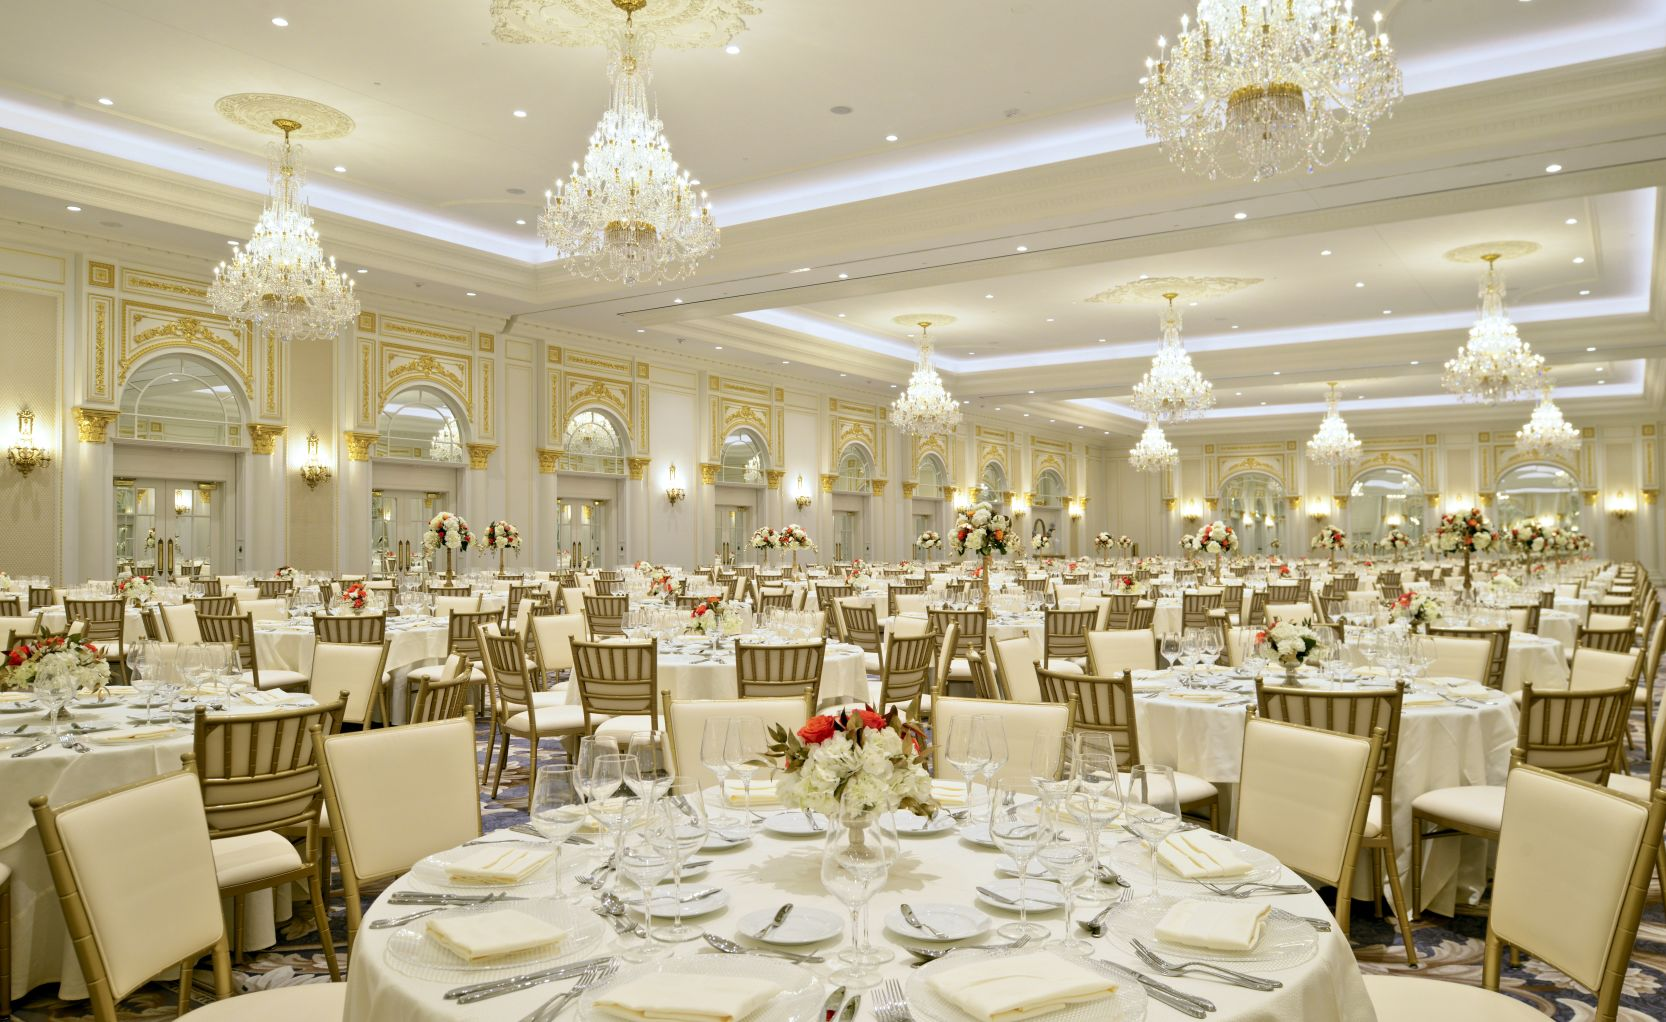 Gold Chiavari Chairs and Table Settings